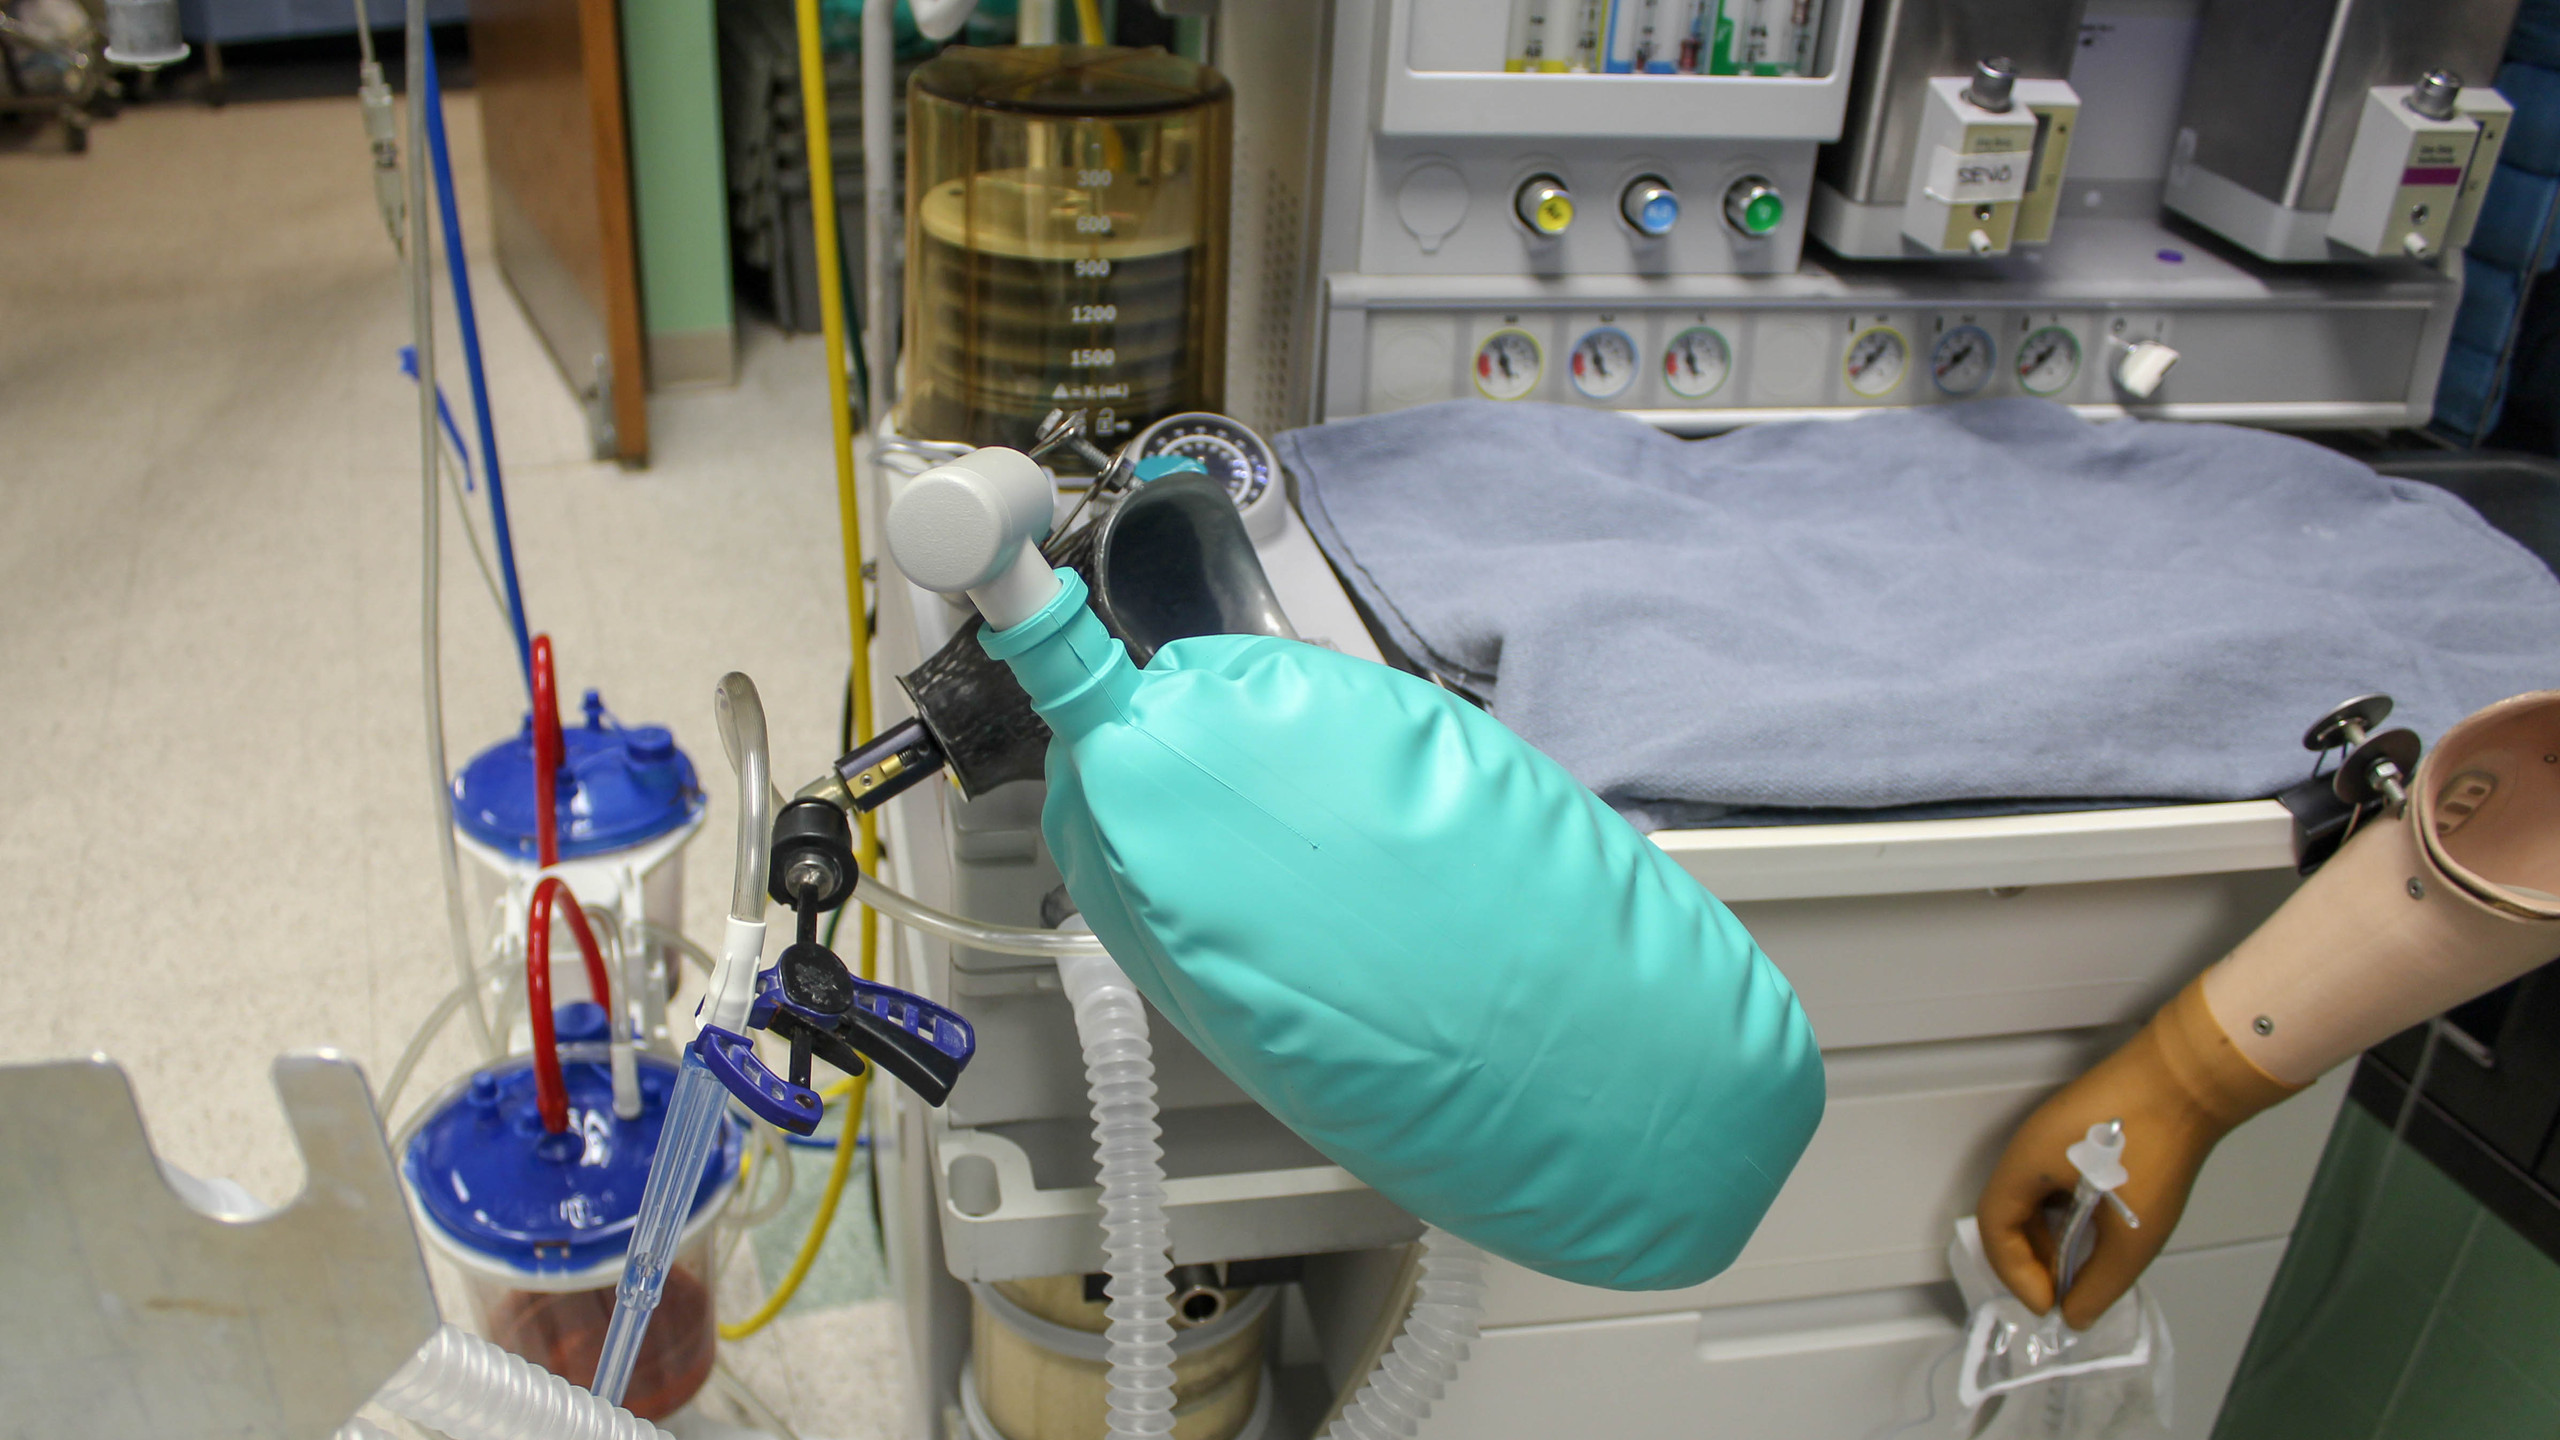 Brett prepares his tools before a procedure so he ready to respond to his patients' needs